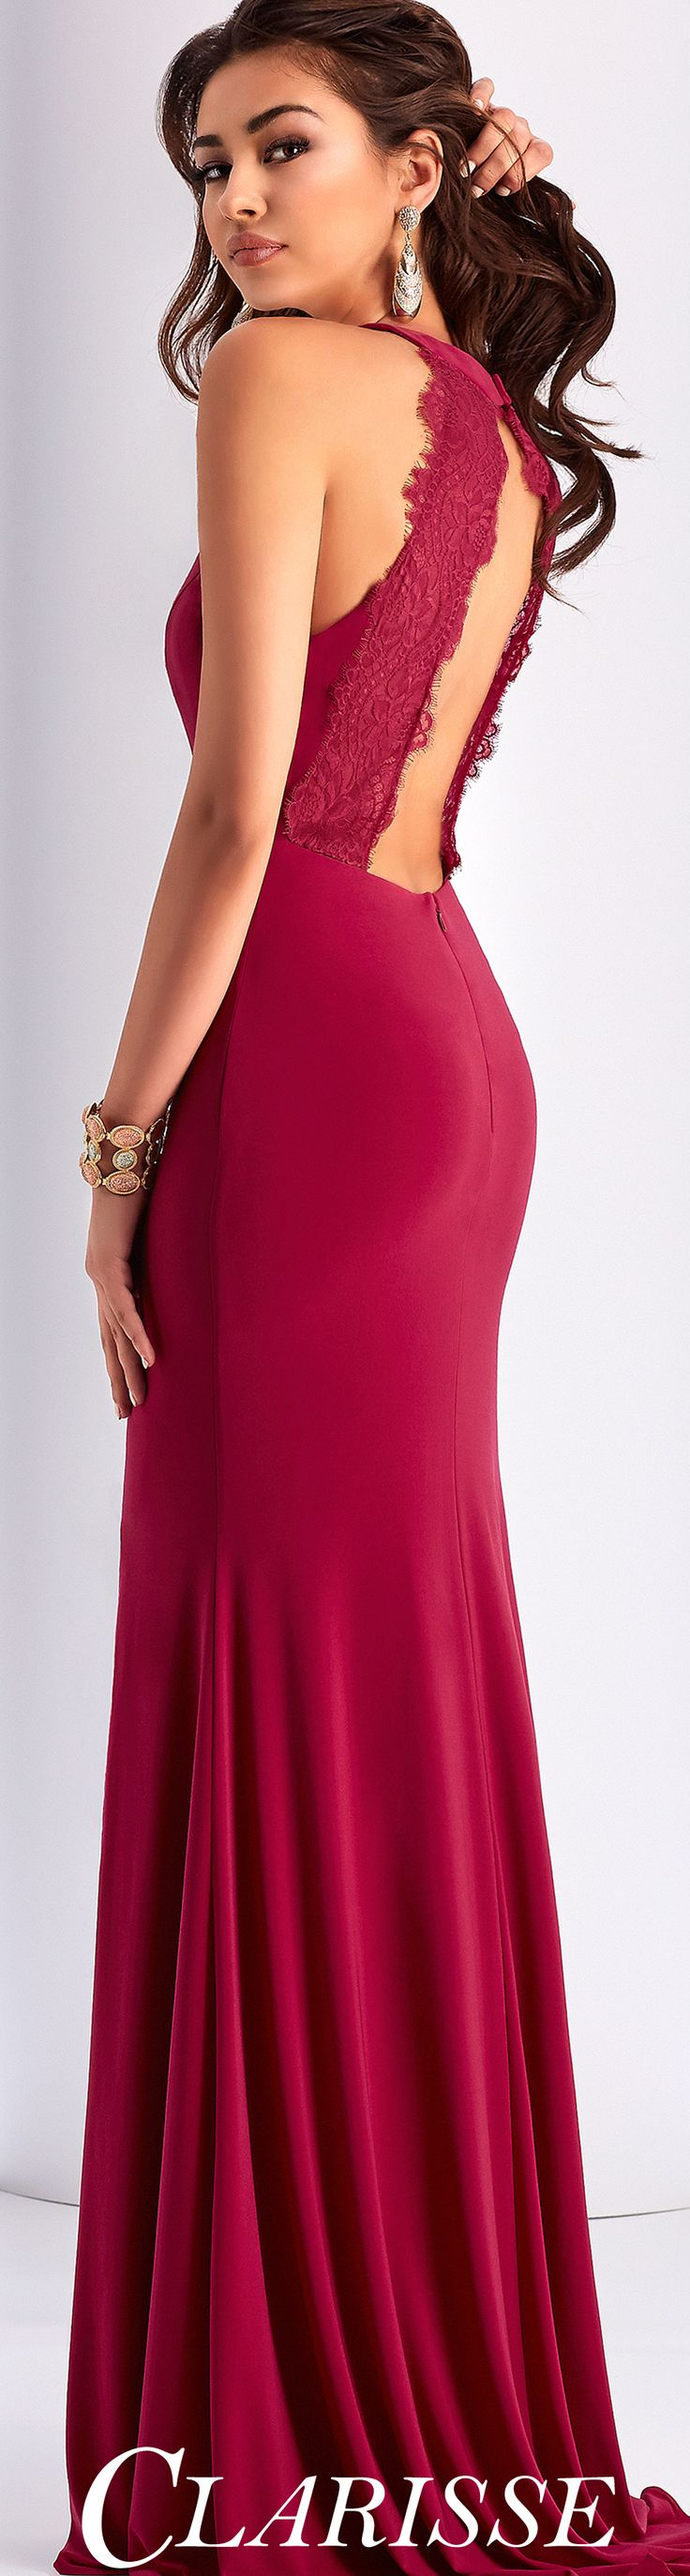 Clarisse Fitted Prom Dress 3048. Simple halter prom dress with sexy slit, lace detail, and open back. COLOR: Berry, Smoke SIZE: 00-16